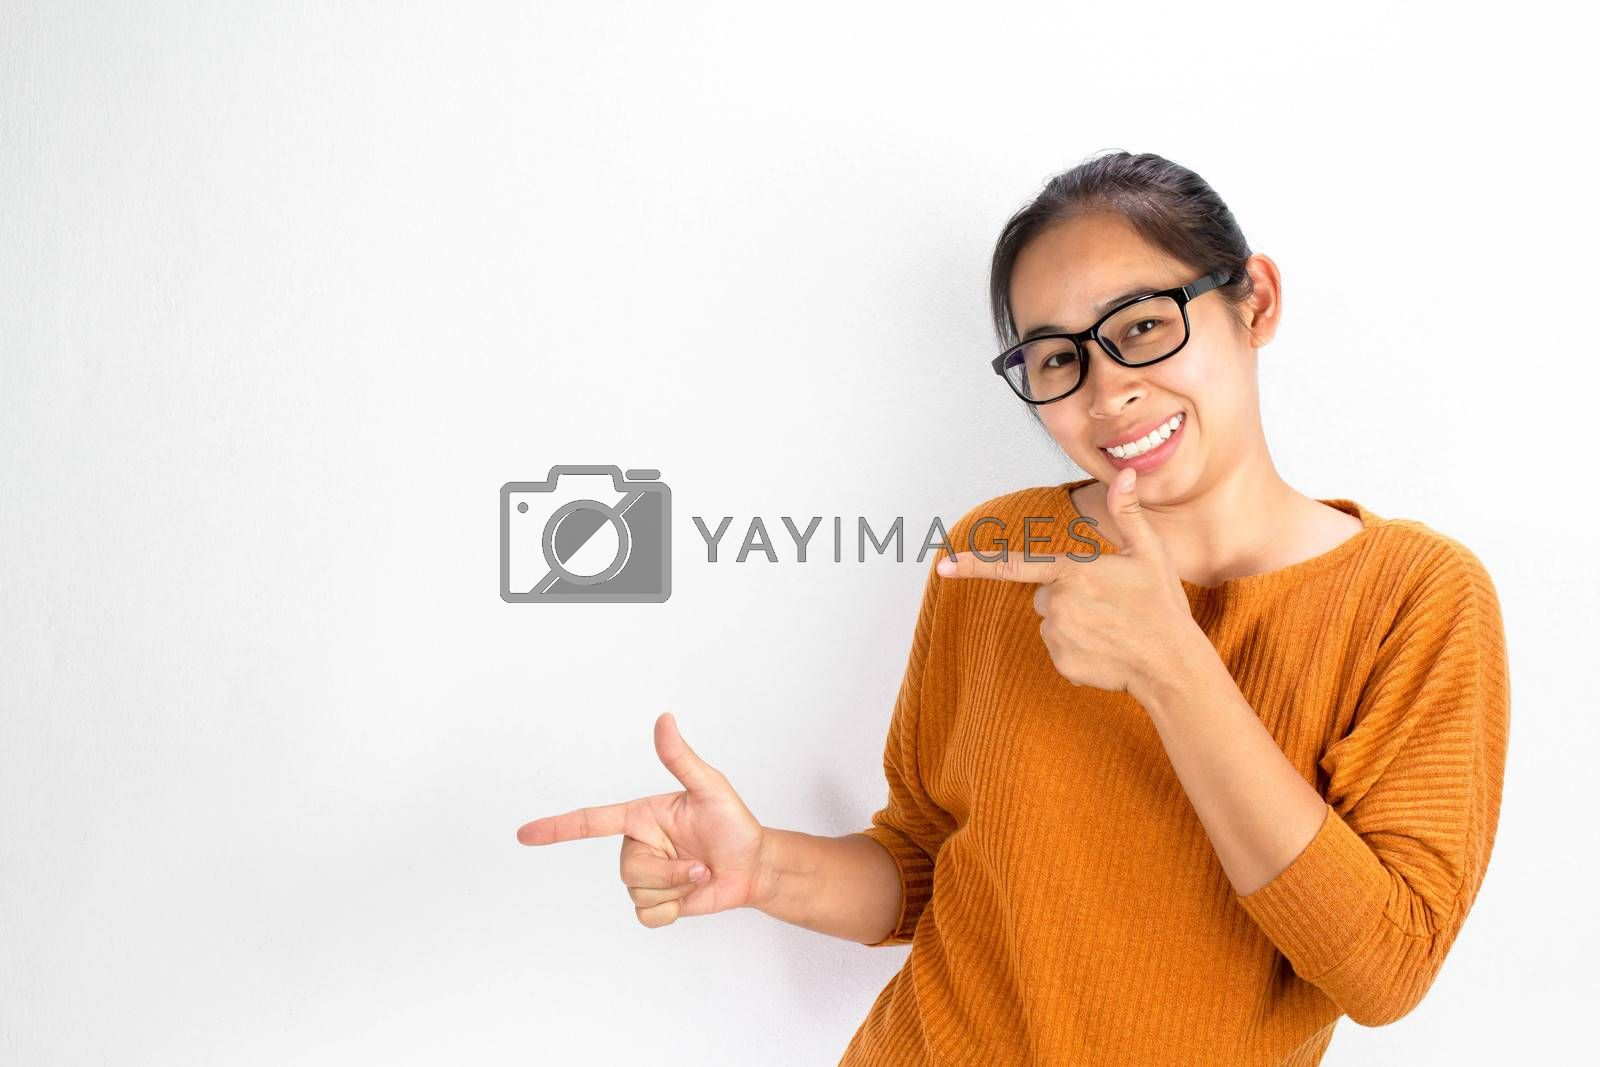 Asian woman wearing orange shirt and eyeglasses isolated on white background smiling and looking at the camera pointing with two hands and fingers to the side. by TEERASAK